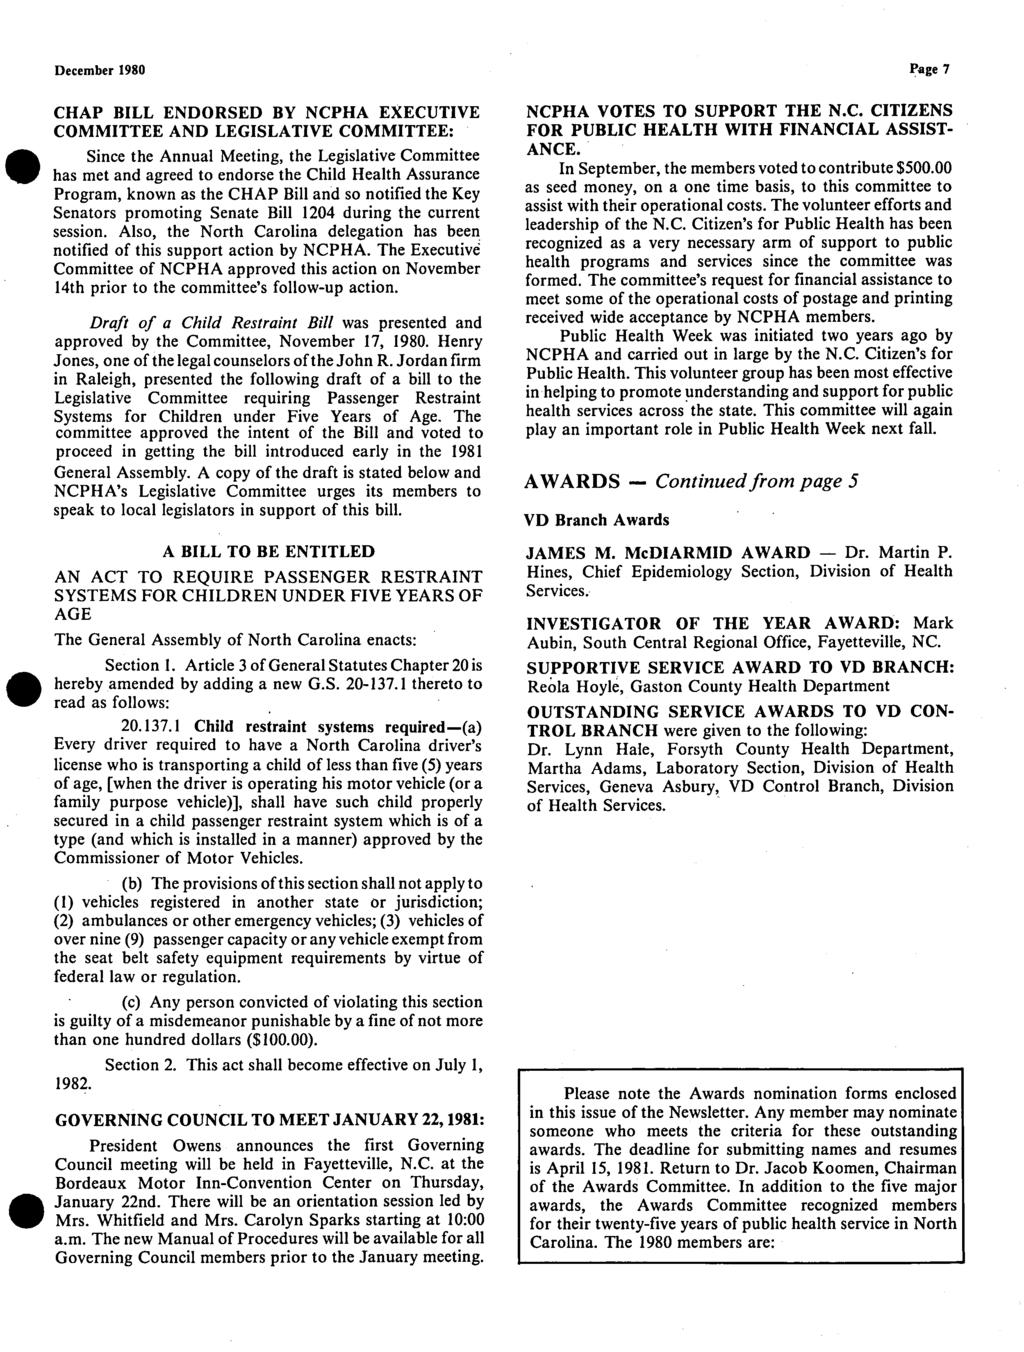 December 1980 Page 7 40 CHAP BILL ENDORSED BY NCPHA EXECUTIVE COMMITTEE AND LEGISLATIVE COMMITTEE: Since the Annual Meeting, the Legislative Committee has met and agreed to endorse the Child Health